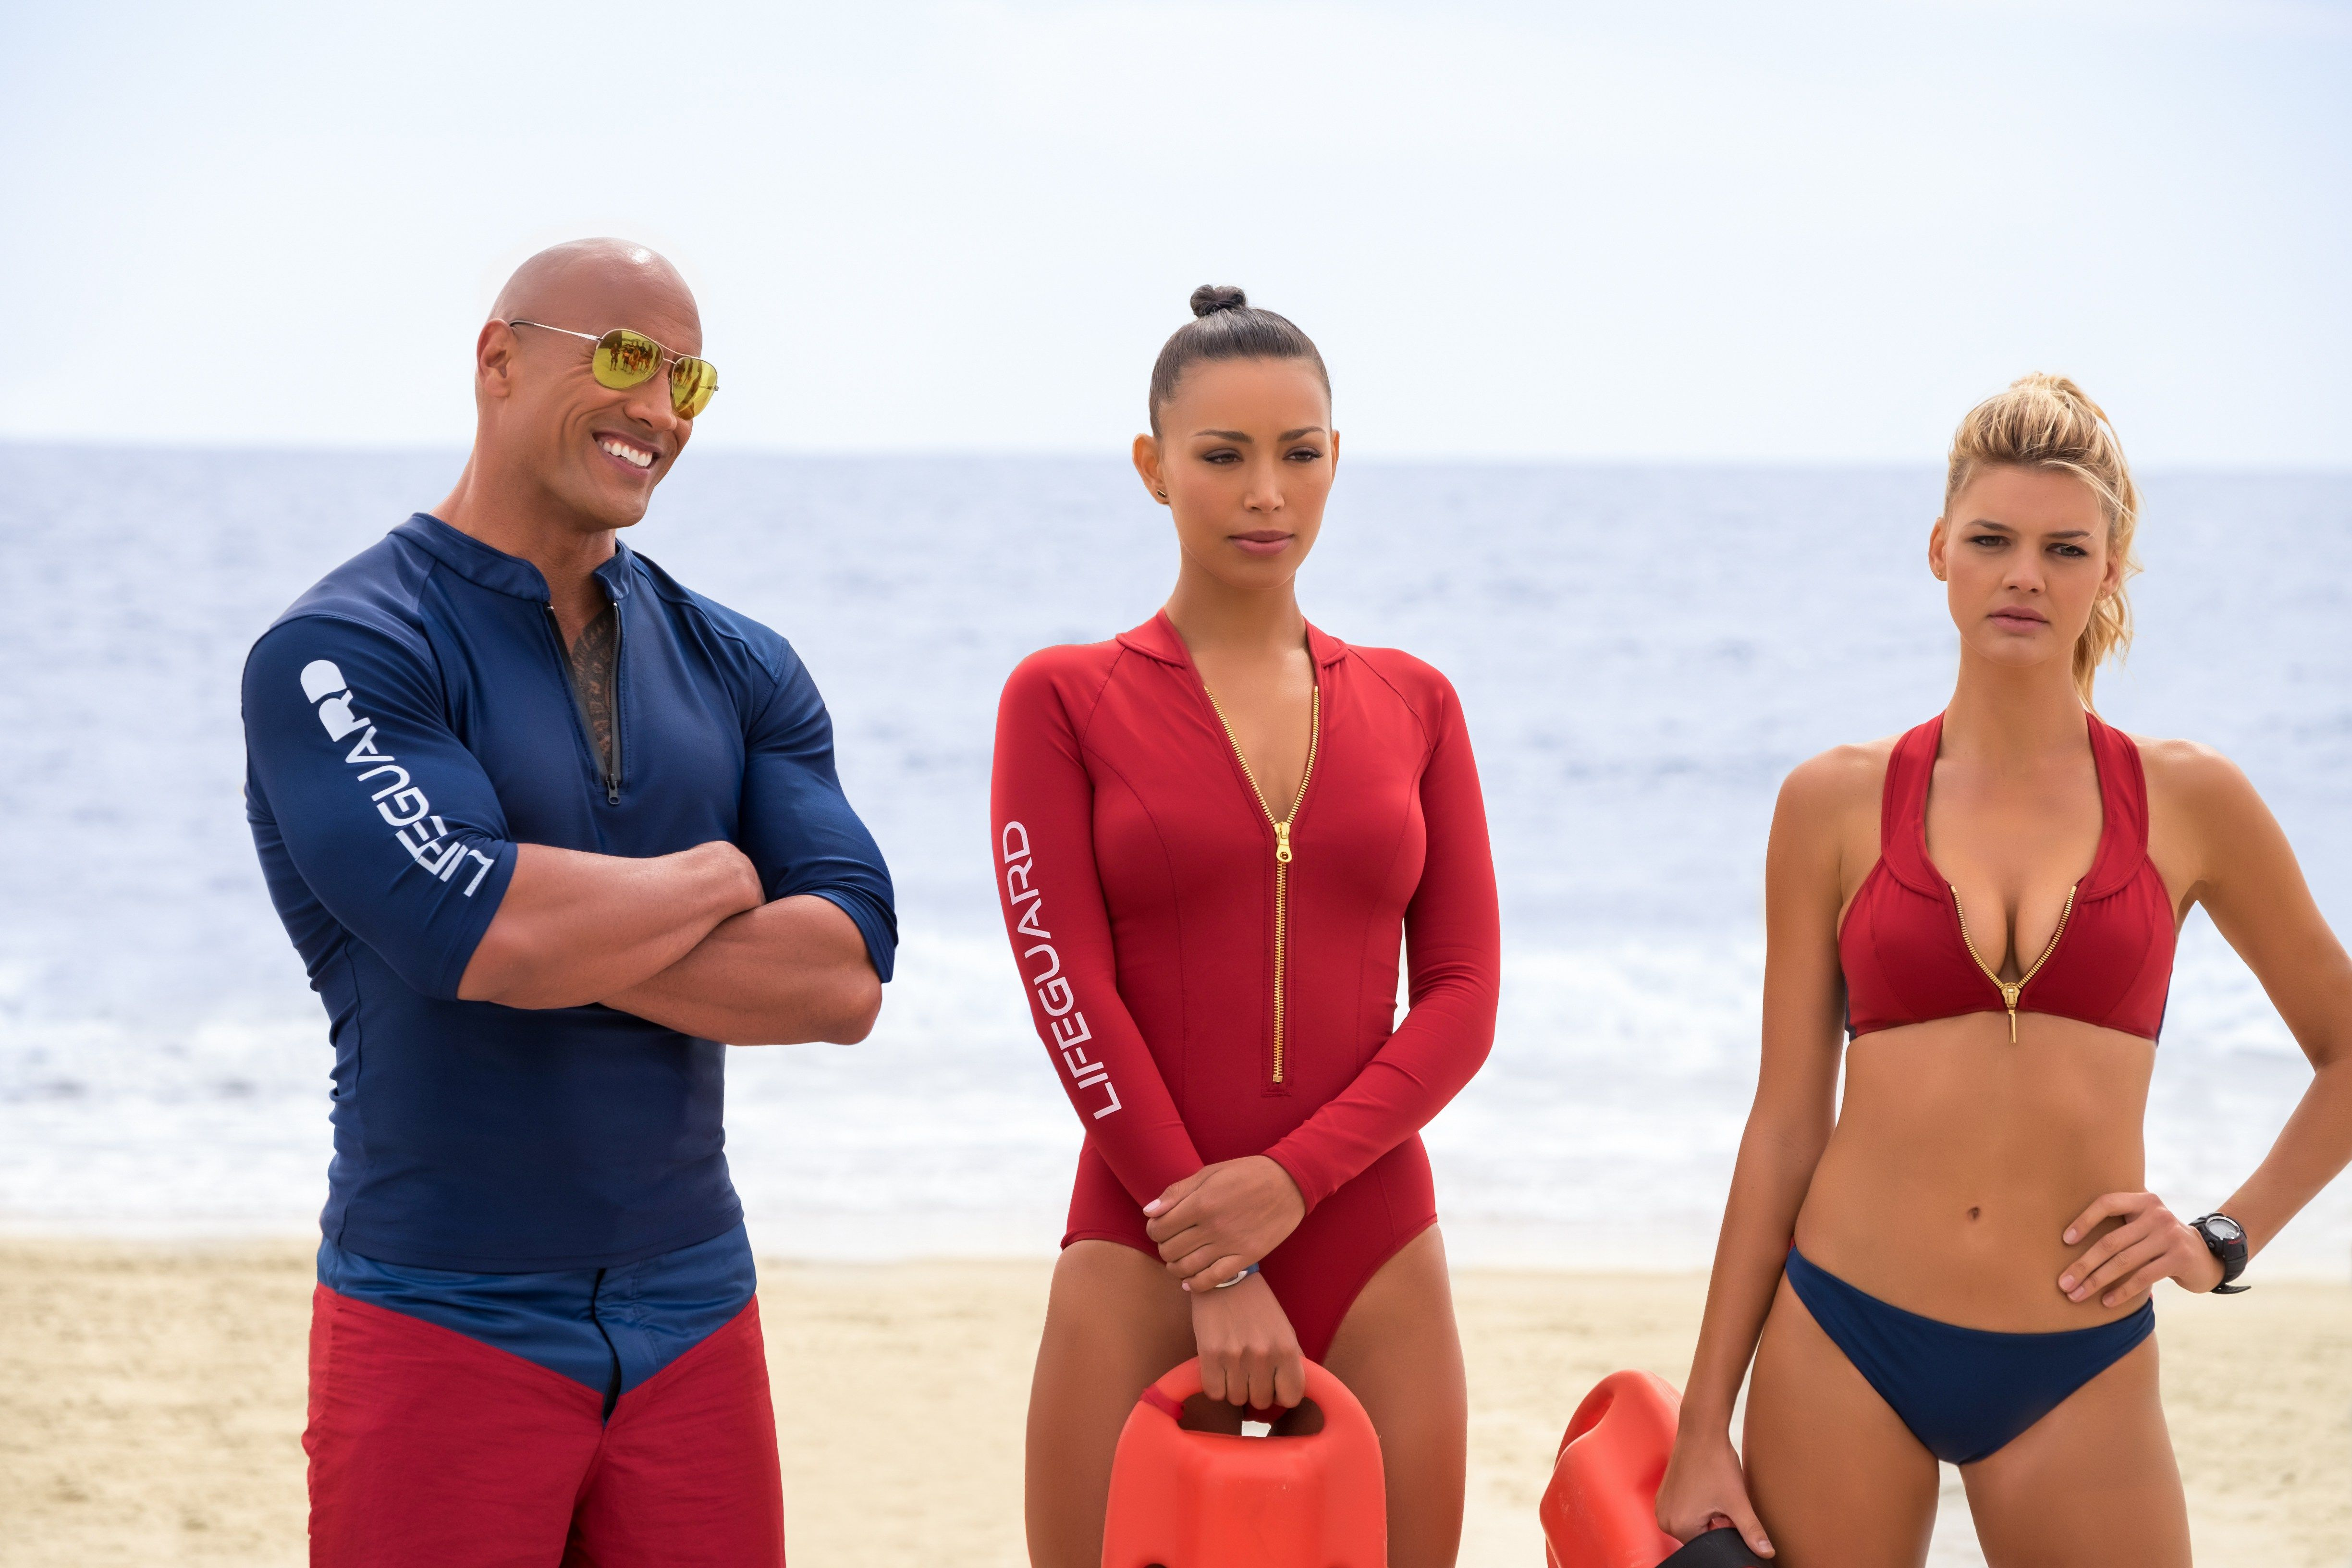 There S Lots Of Hot Bodies And Lots Of Laughs In The Big Screen Version Of Baywatch Goldie Reviews The Film And En Baywatch Movie Kelly Rohrbach Baywatch 2017